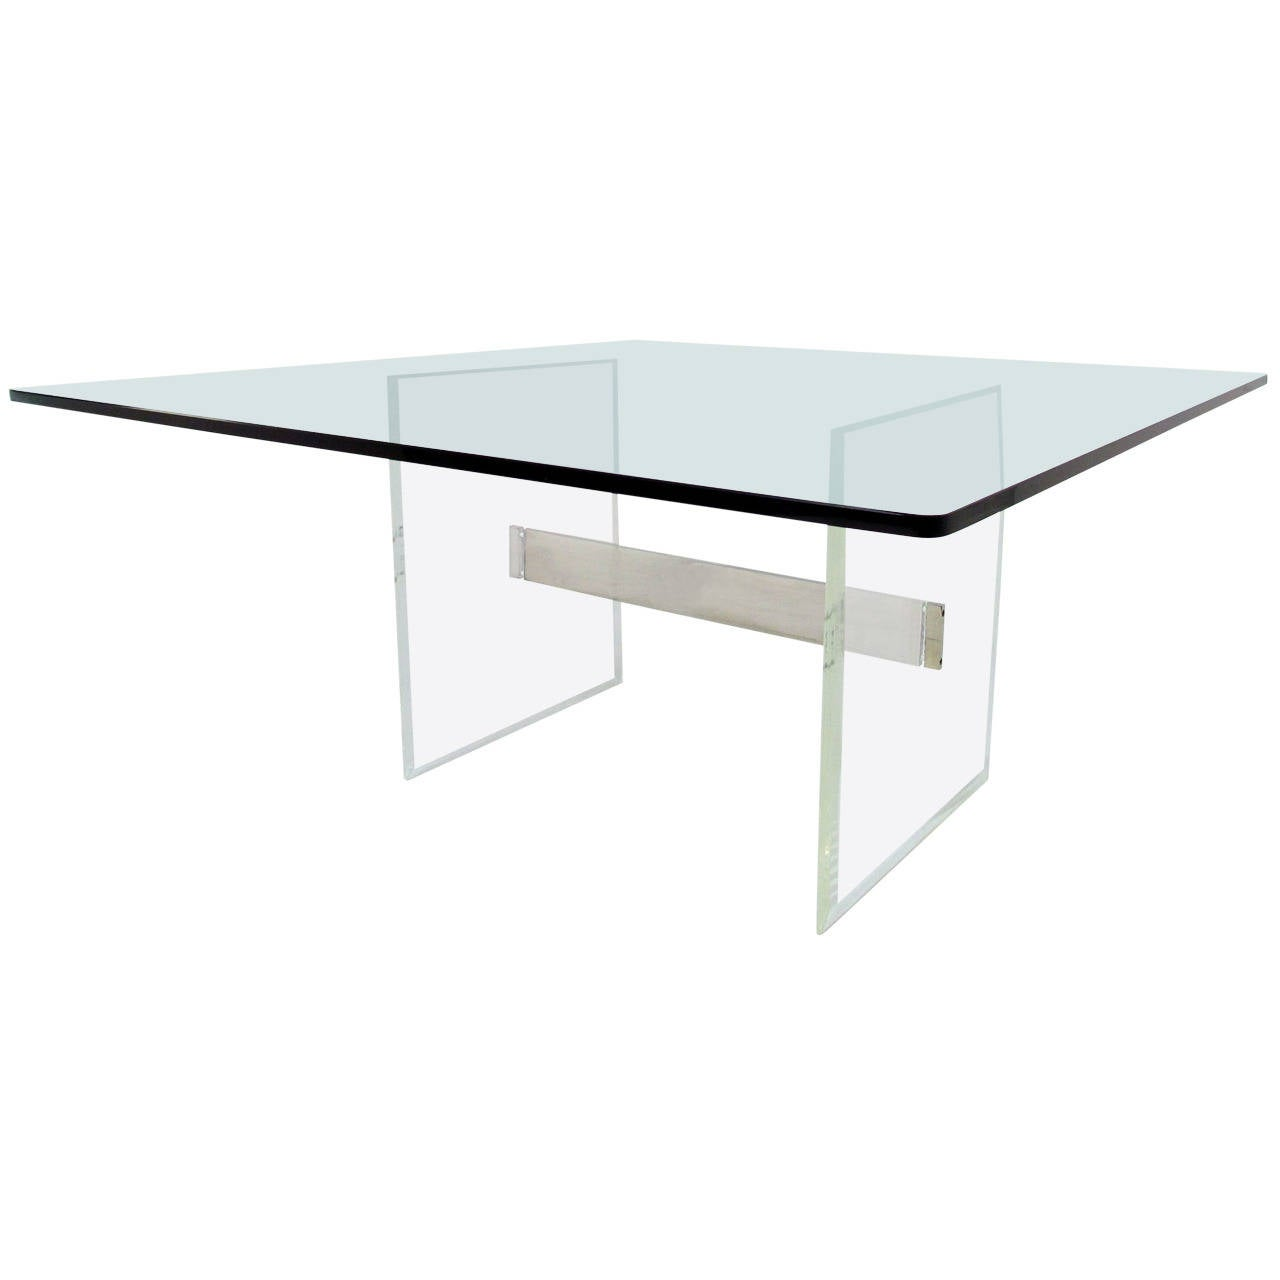 Lucite and aluminum i beam dining table with square glass for Square glass dining table